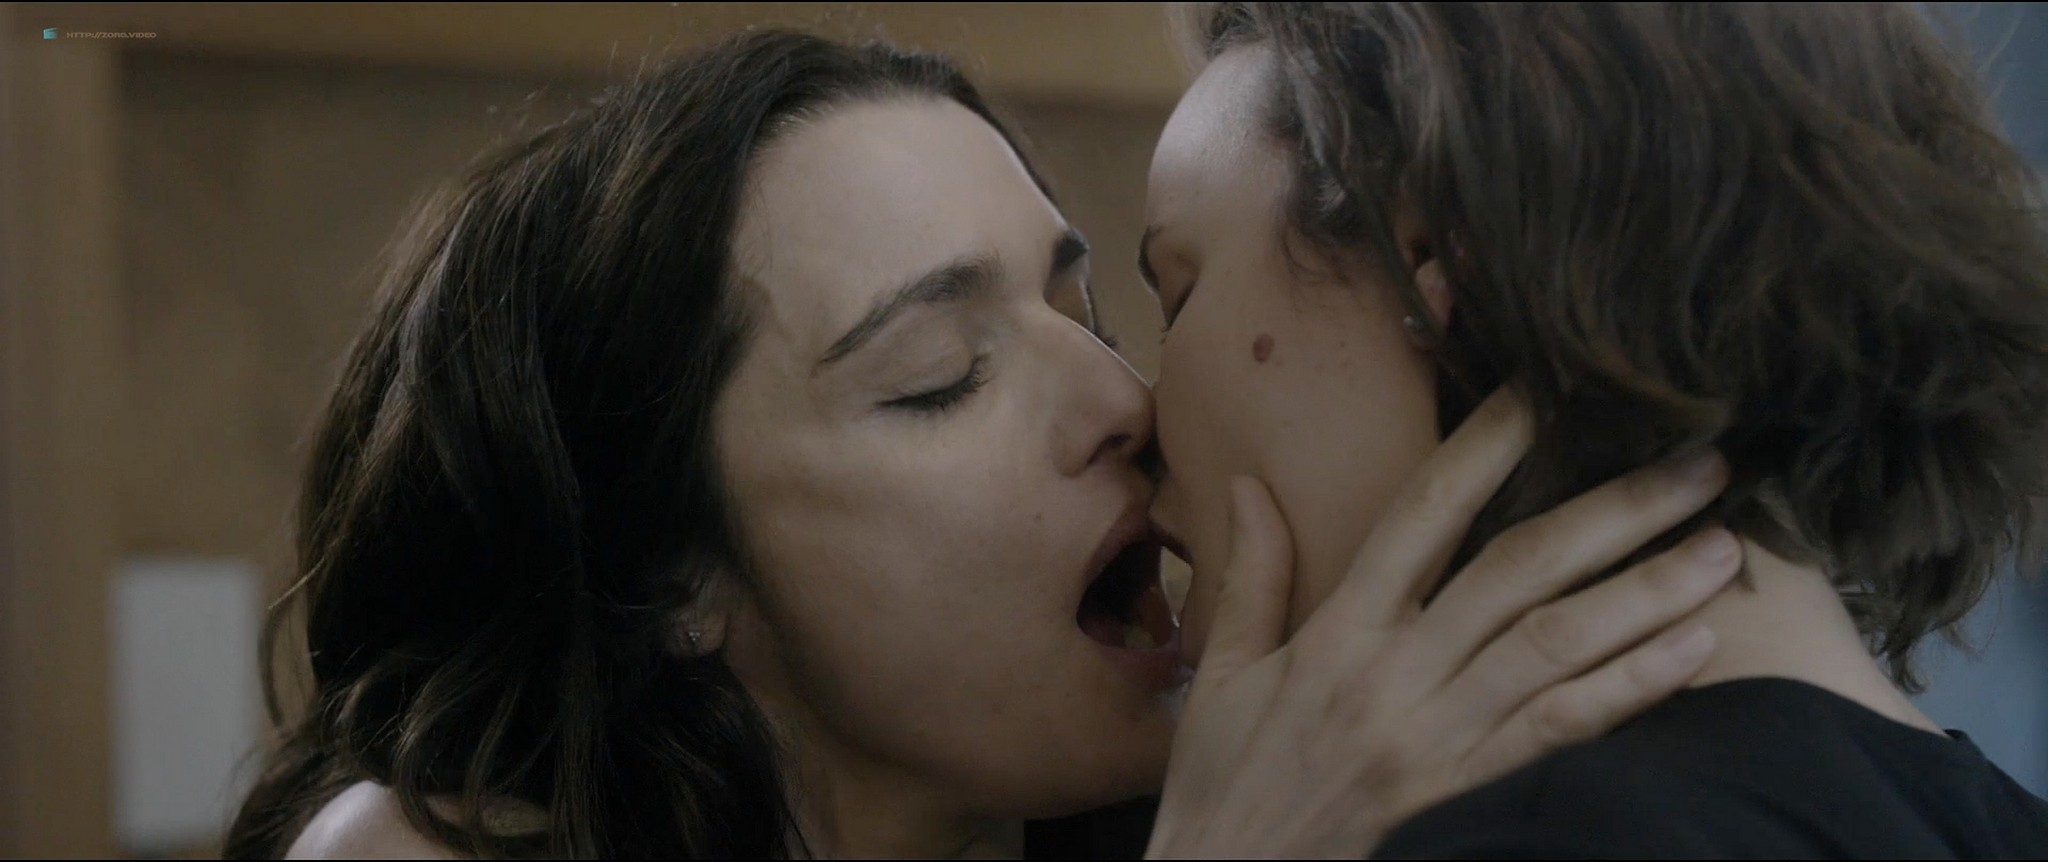 Rachel Weisz To Star In Steamy Lesbian Sex Scenes With Rachel Mcadams For New Picture Disobedience